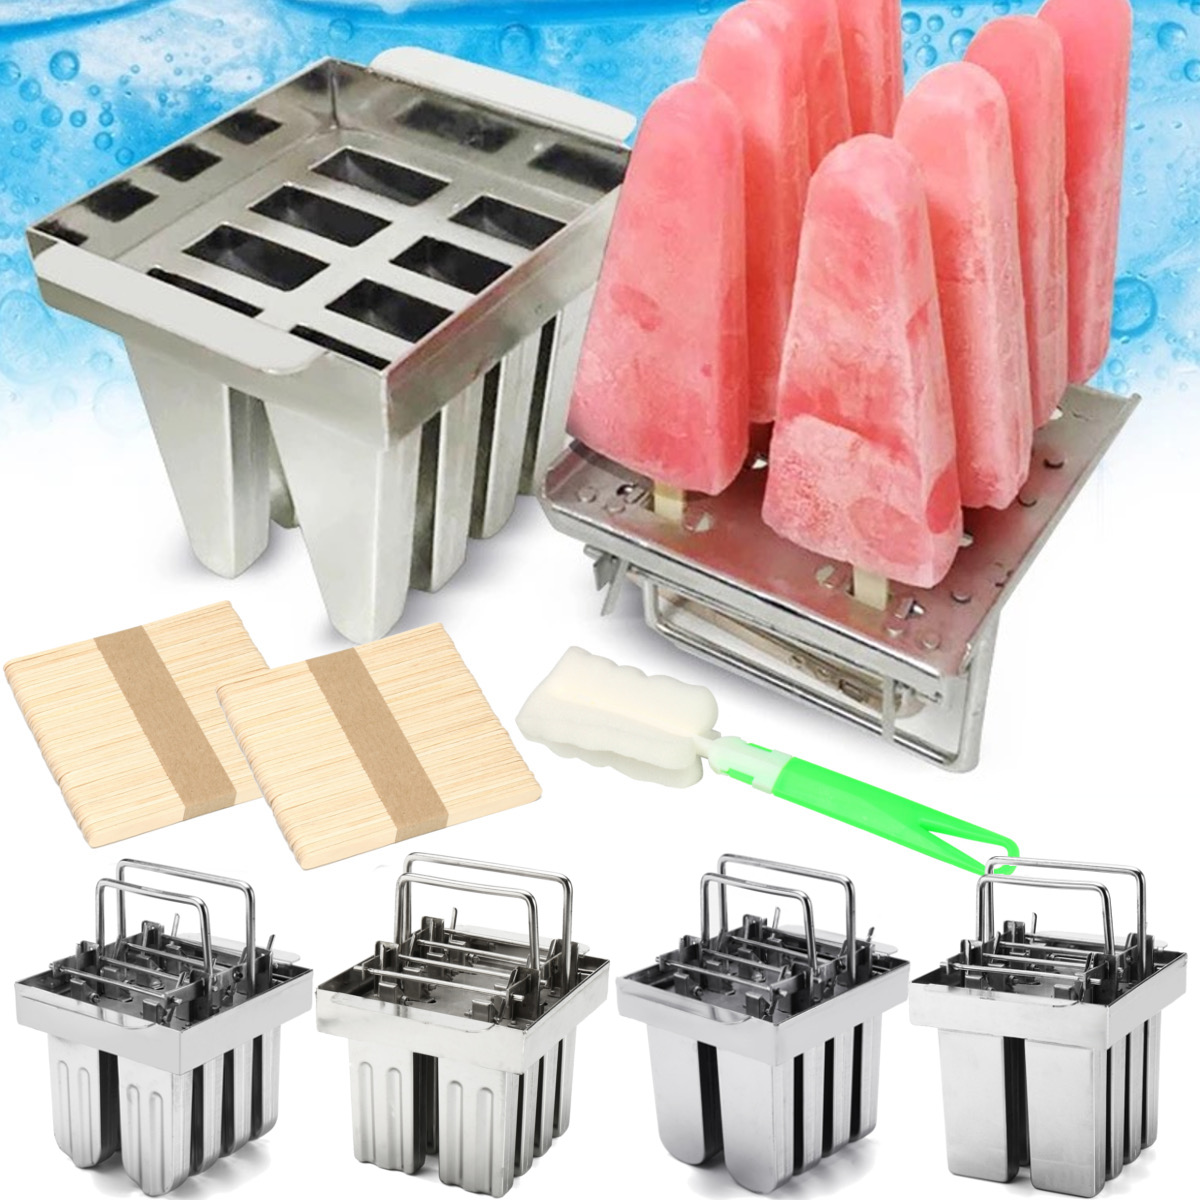 8Pcs Stainless Steel Molds Mold Ice Pop Lolly Popsicle Ice Cream Stick Holder